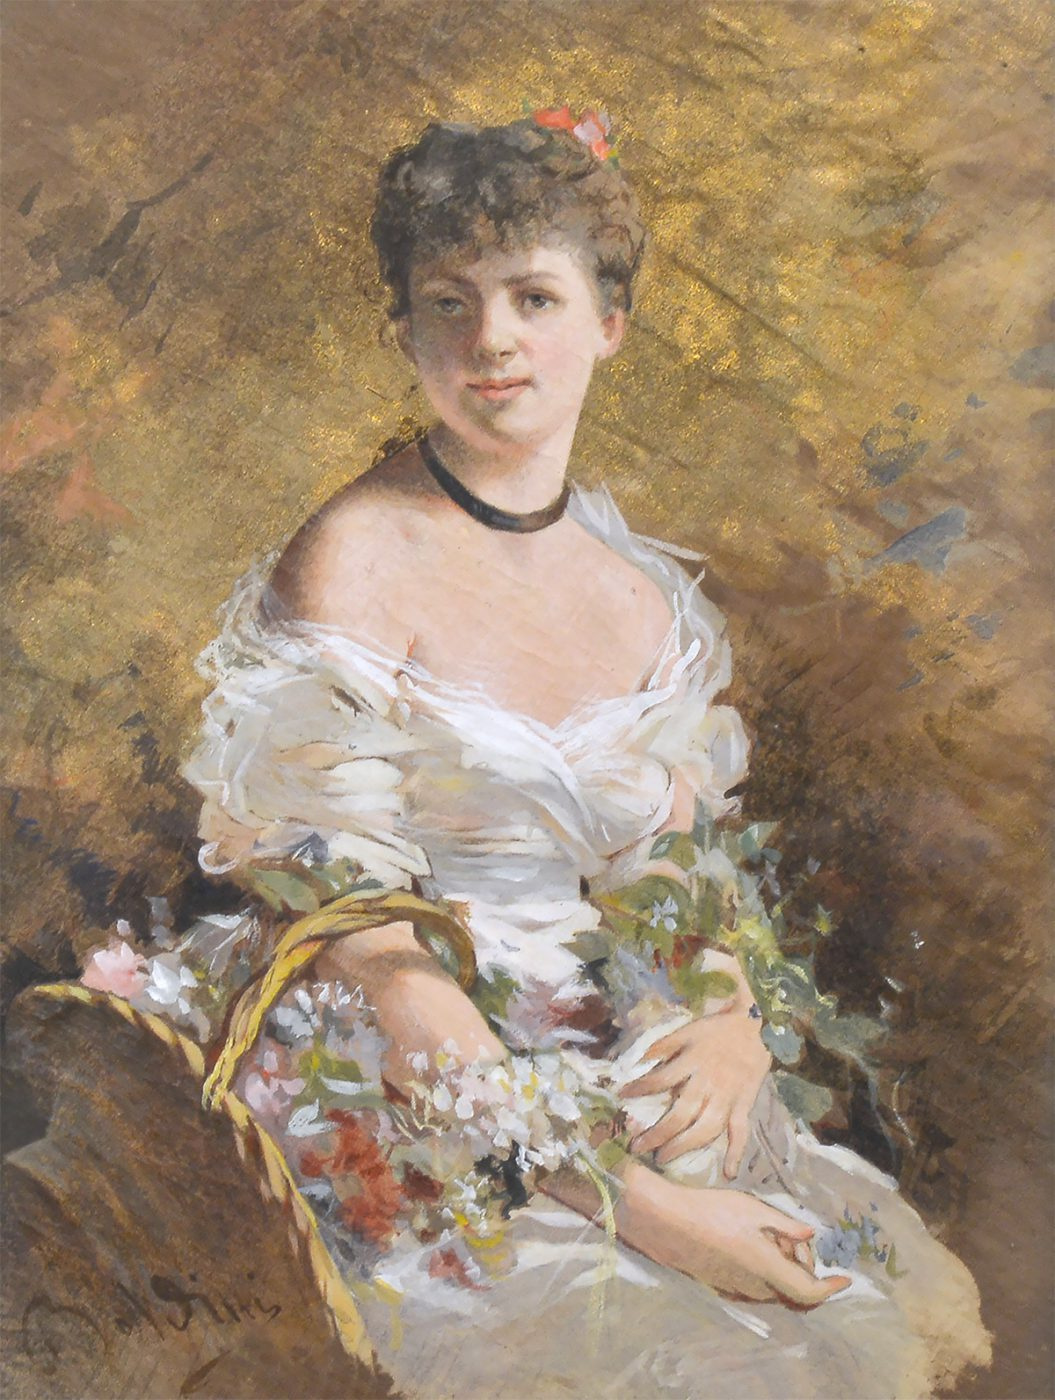 Giovanni Boldini. Portrait of a girl with flowers